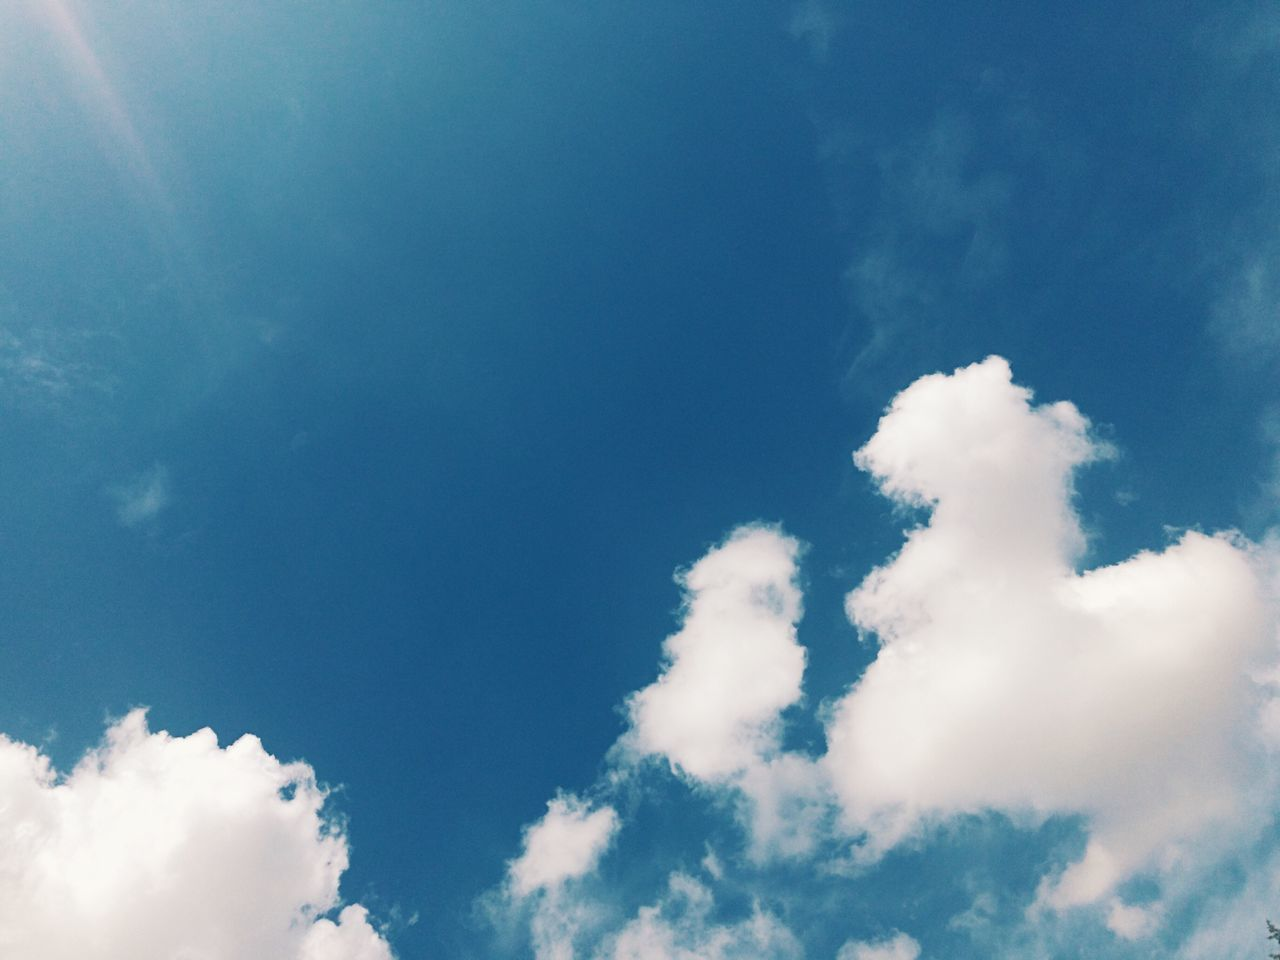 sky, low angle view, nature, cloud - sky, beauty in nature, blue, white color, tranquility, day, backgrounds, sky only, no people, outdoors, scenics